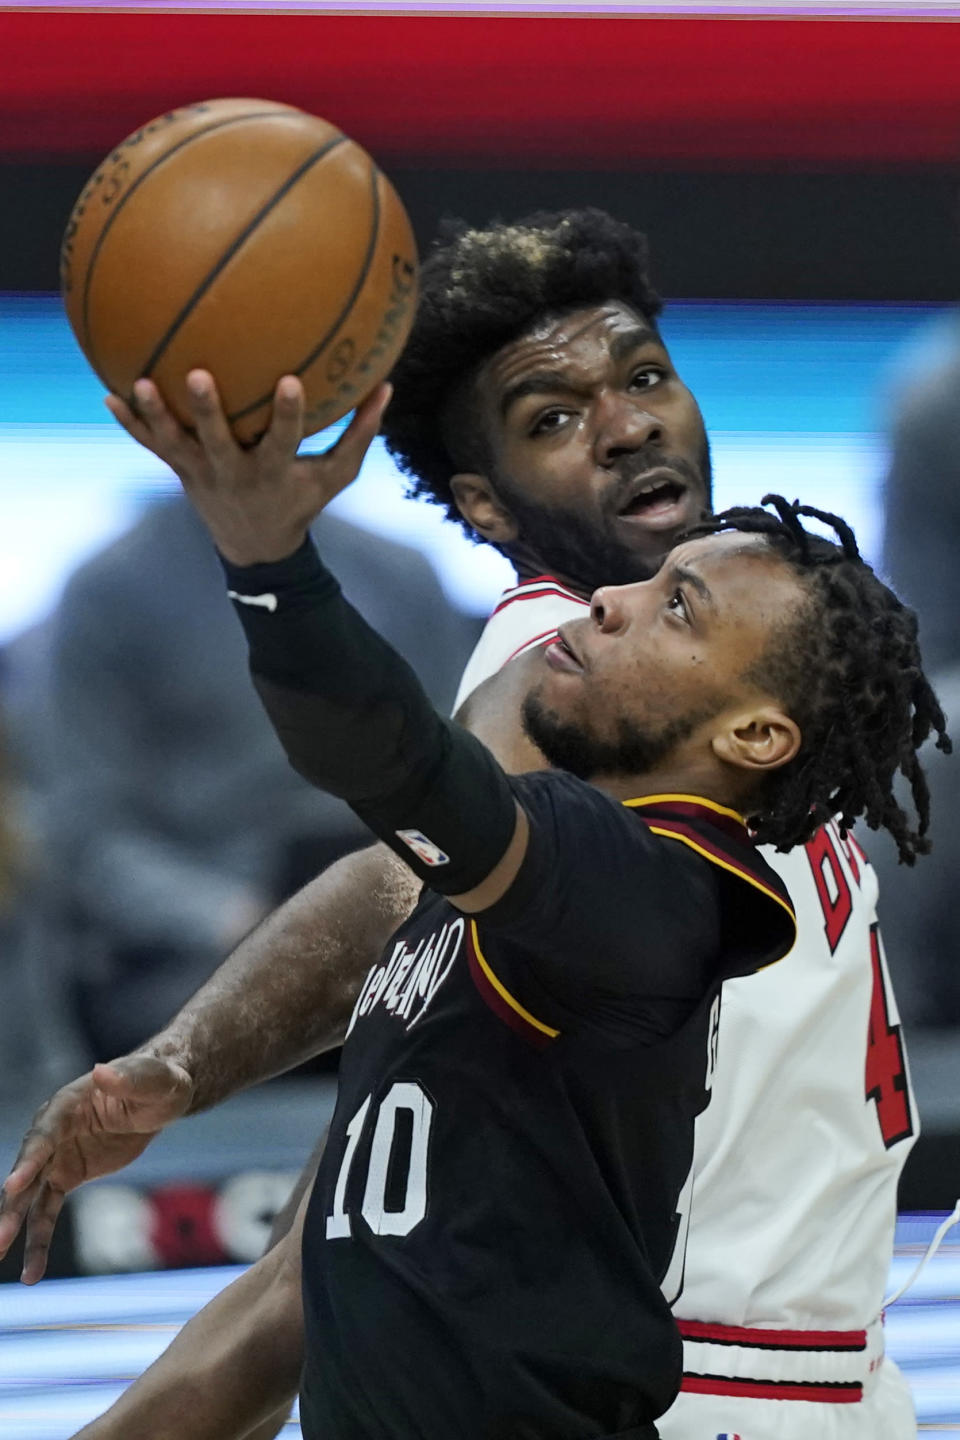 Cleveland Cavaliers' Darius Garland drives to the basket against Chicago Bulls' Patrick Williams during the second half of an NBA basketball game Wednesday, April 21, 2021, in Cleveland. (AP Photo/Tony Dejak)